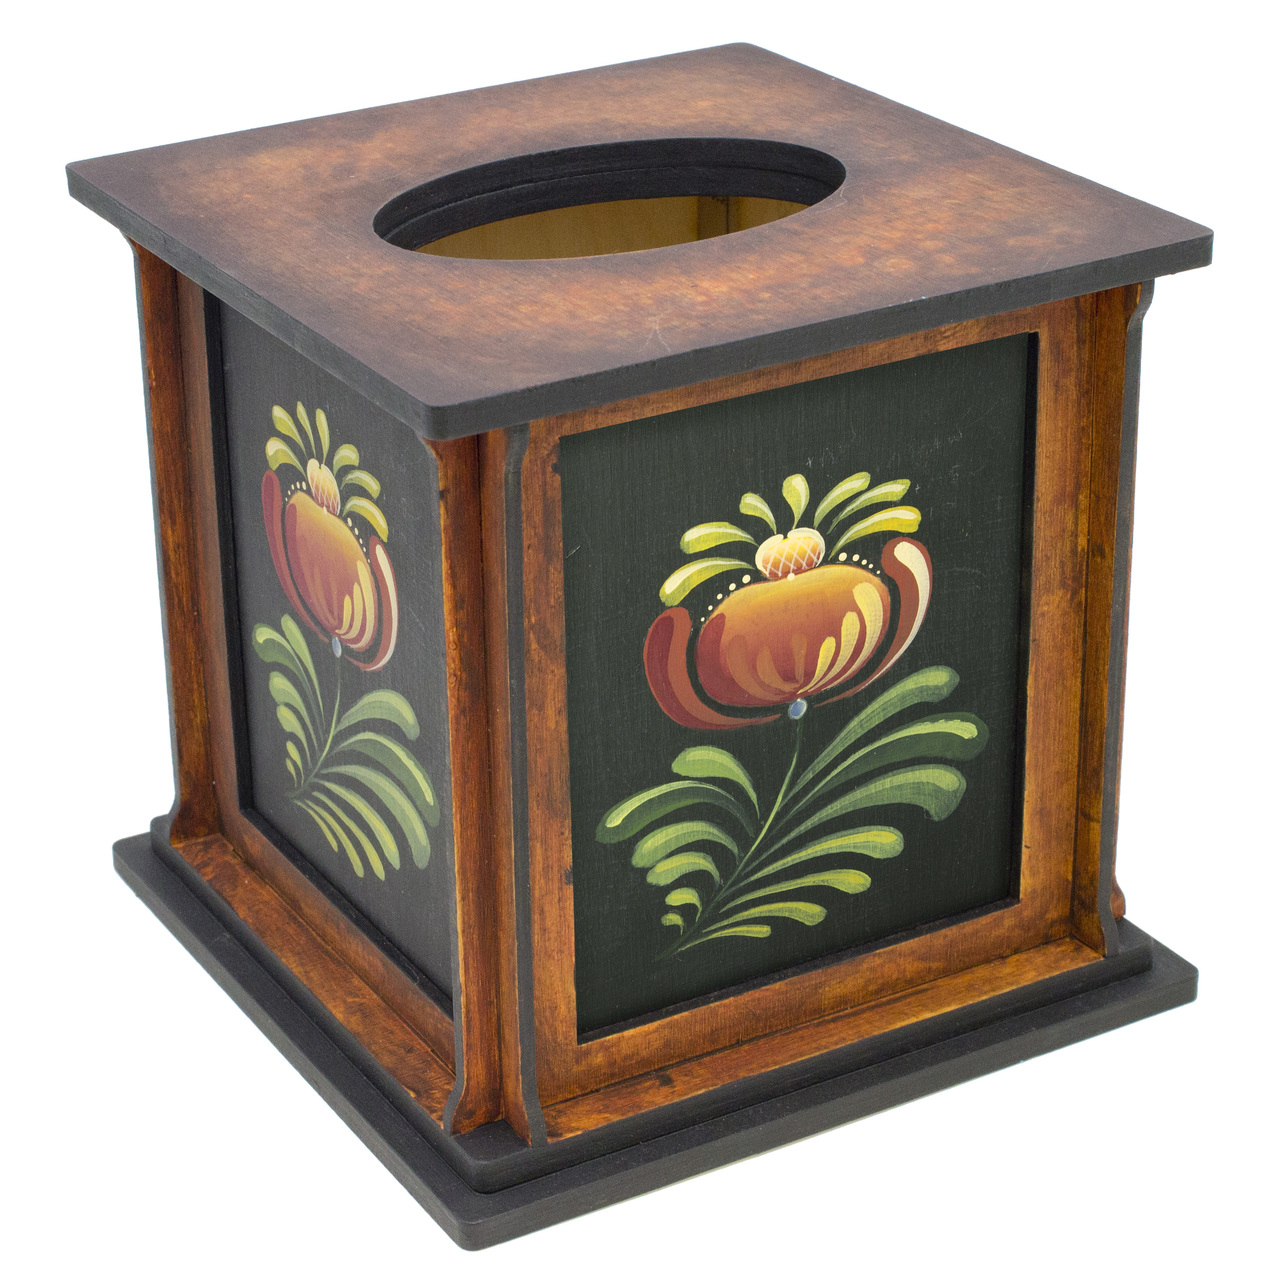 Folk Art Tissue Box - E-Packet - Barbara Franzreb-Bunsey